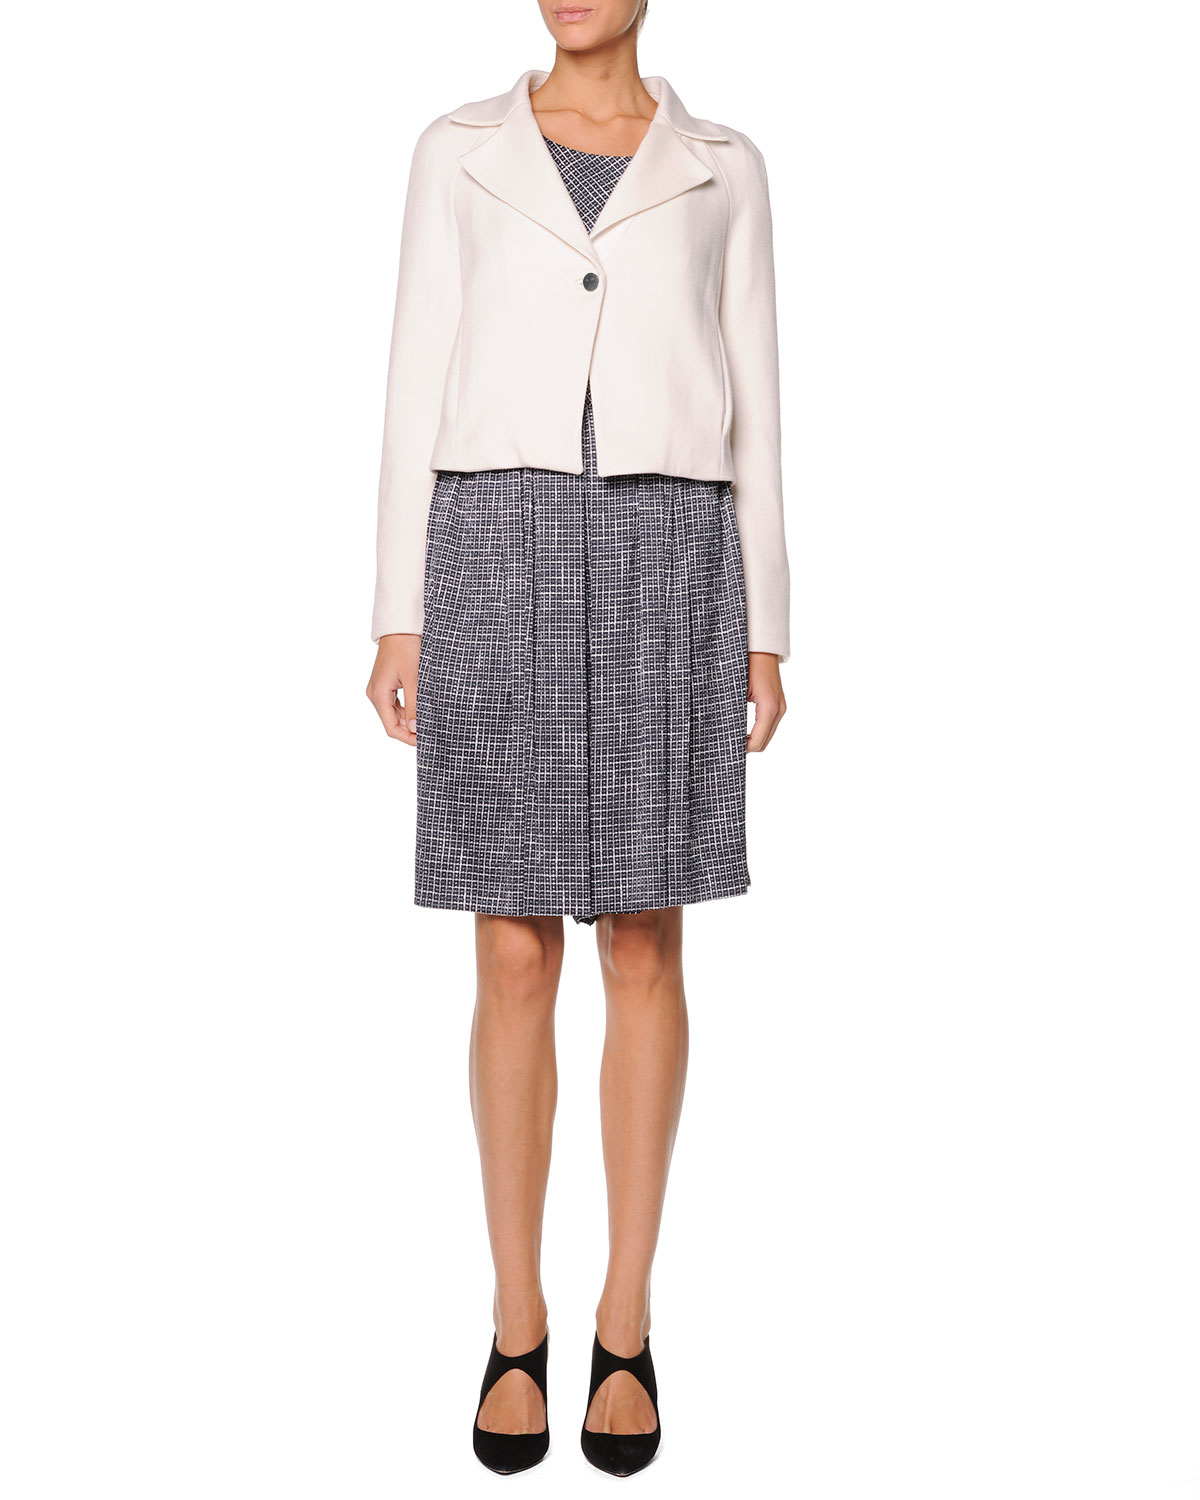 Single-Button Short Jacket, Sleeveless Printed Top & Printed Pleated Skort